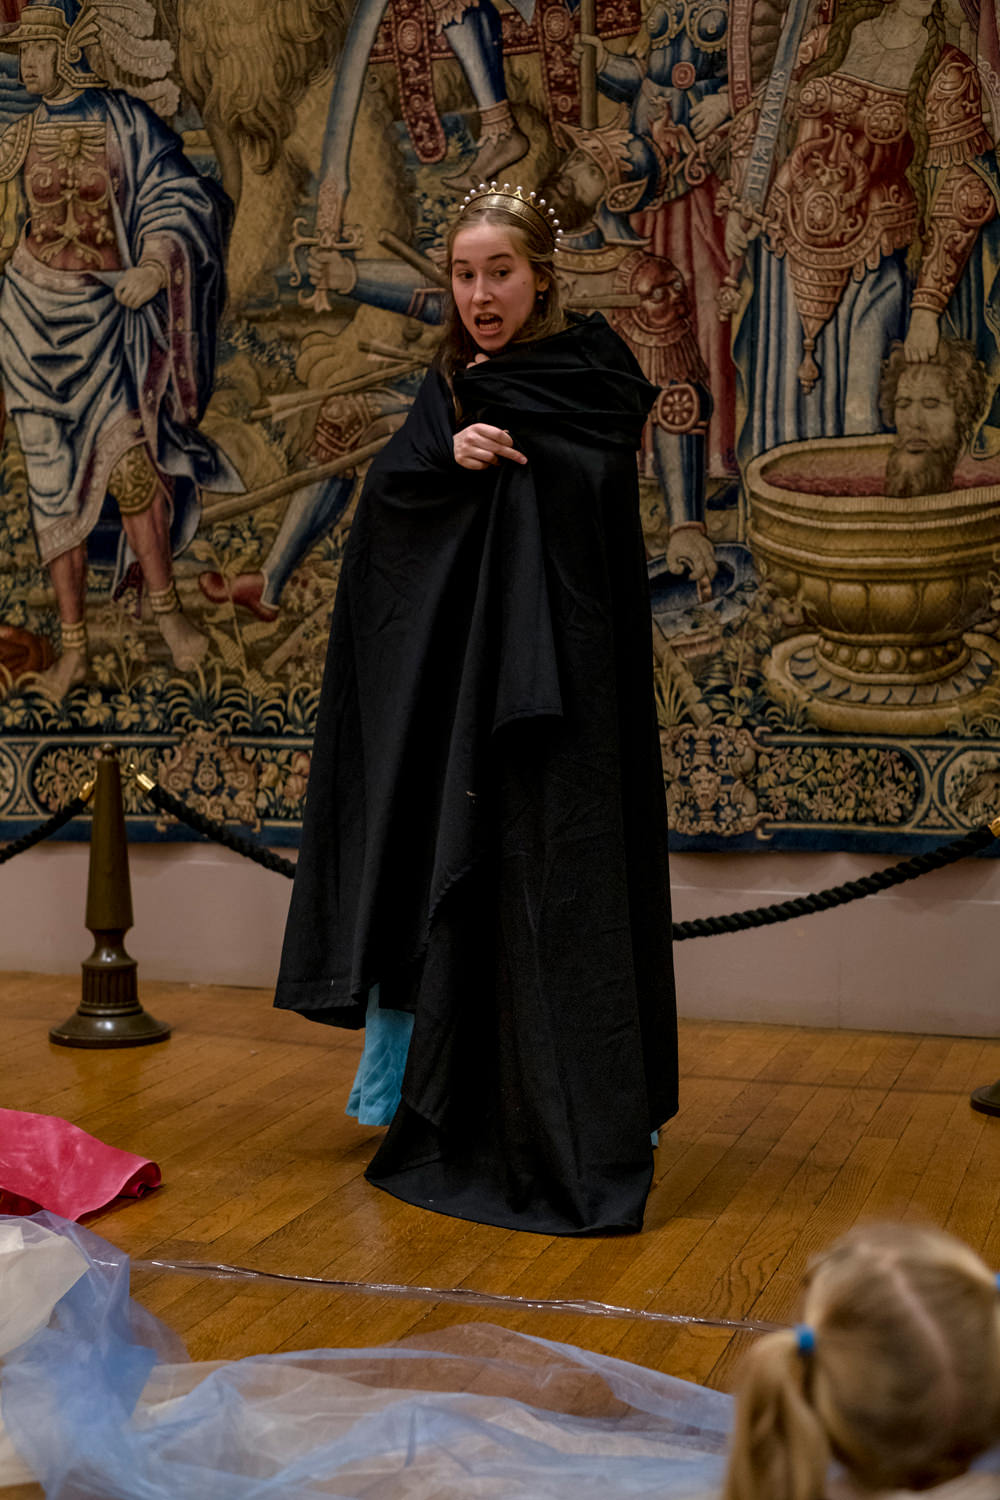 The actress wrapped in a black cloak